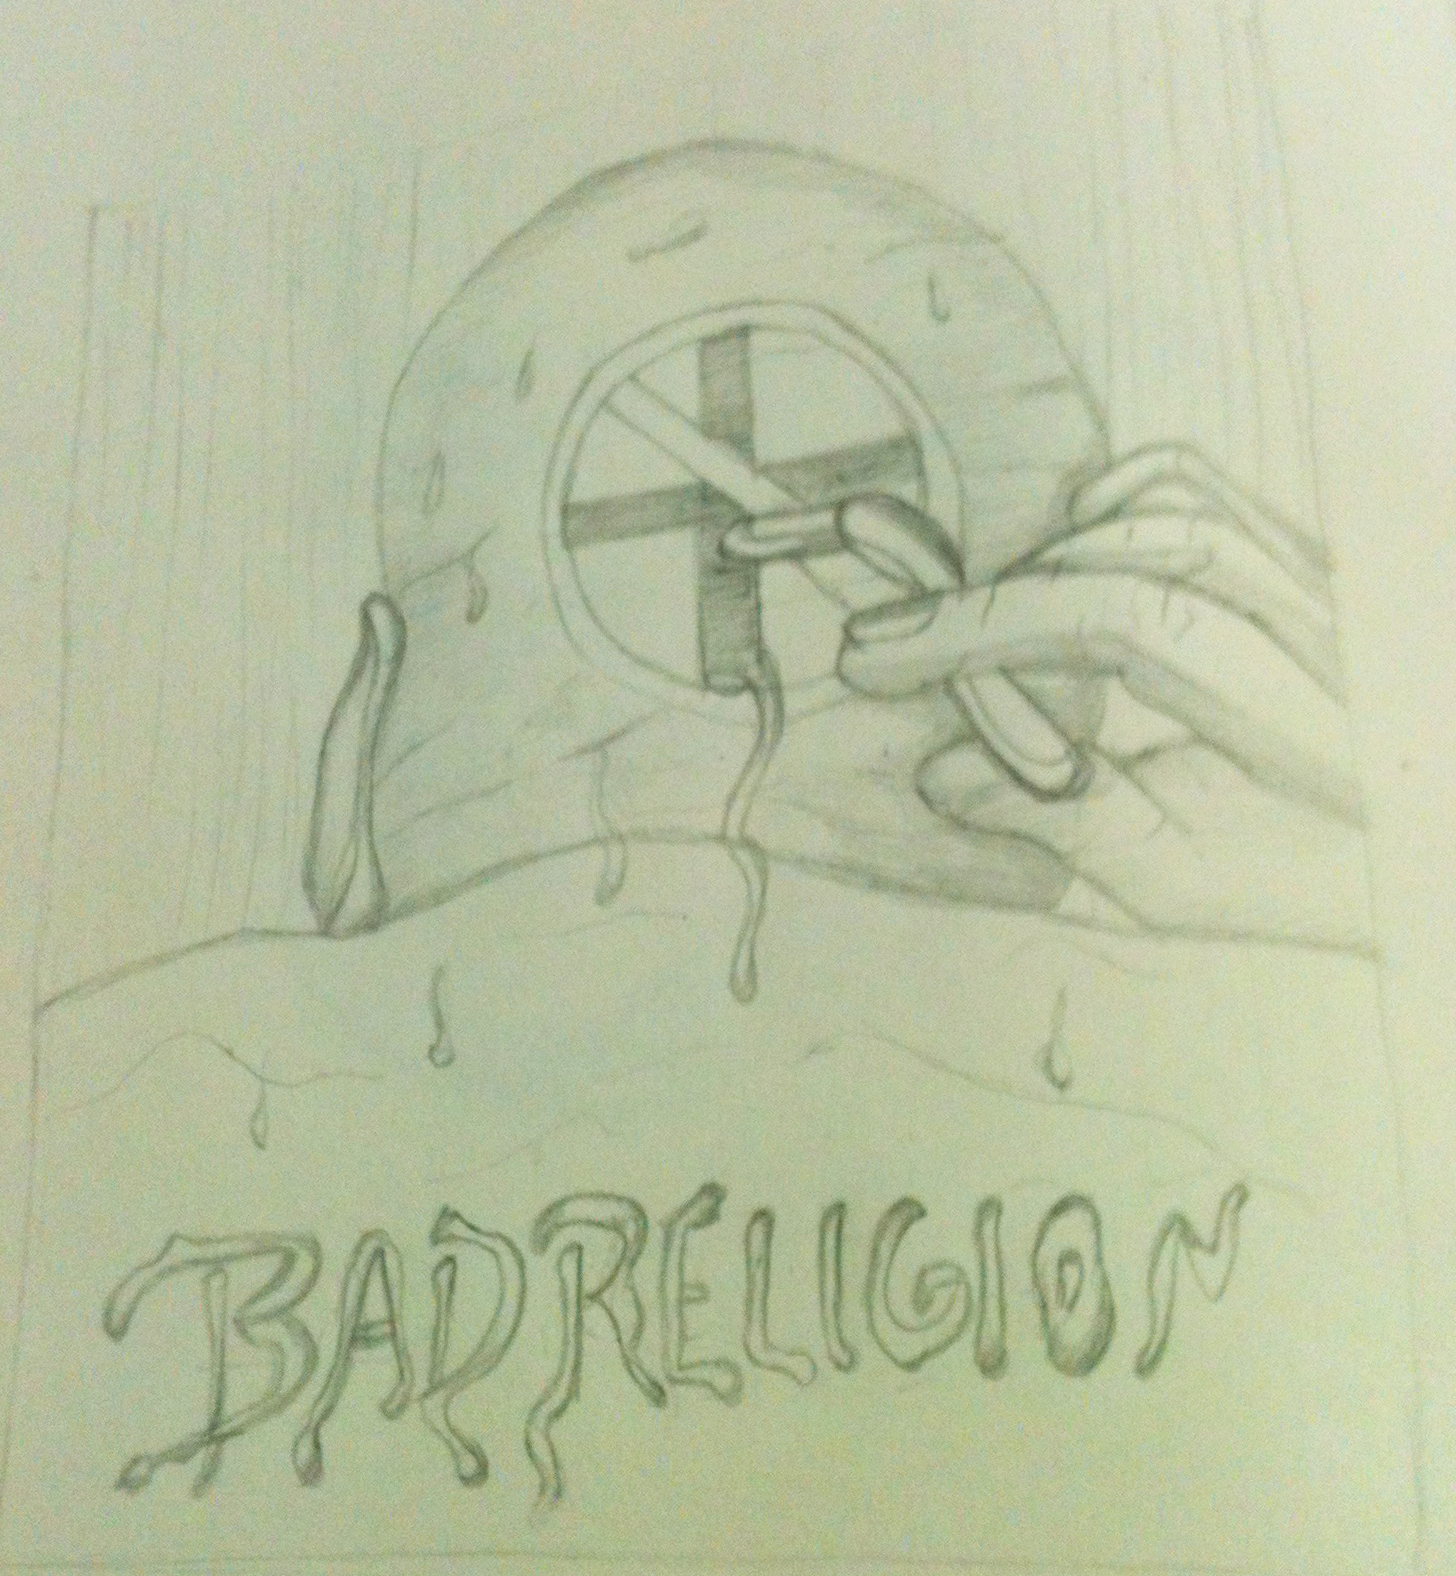 Bad Religion Poster - image 4 - student project